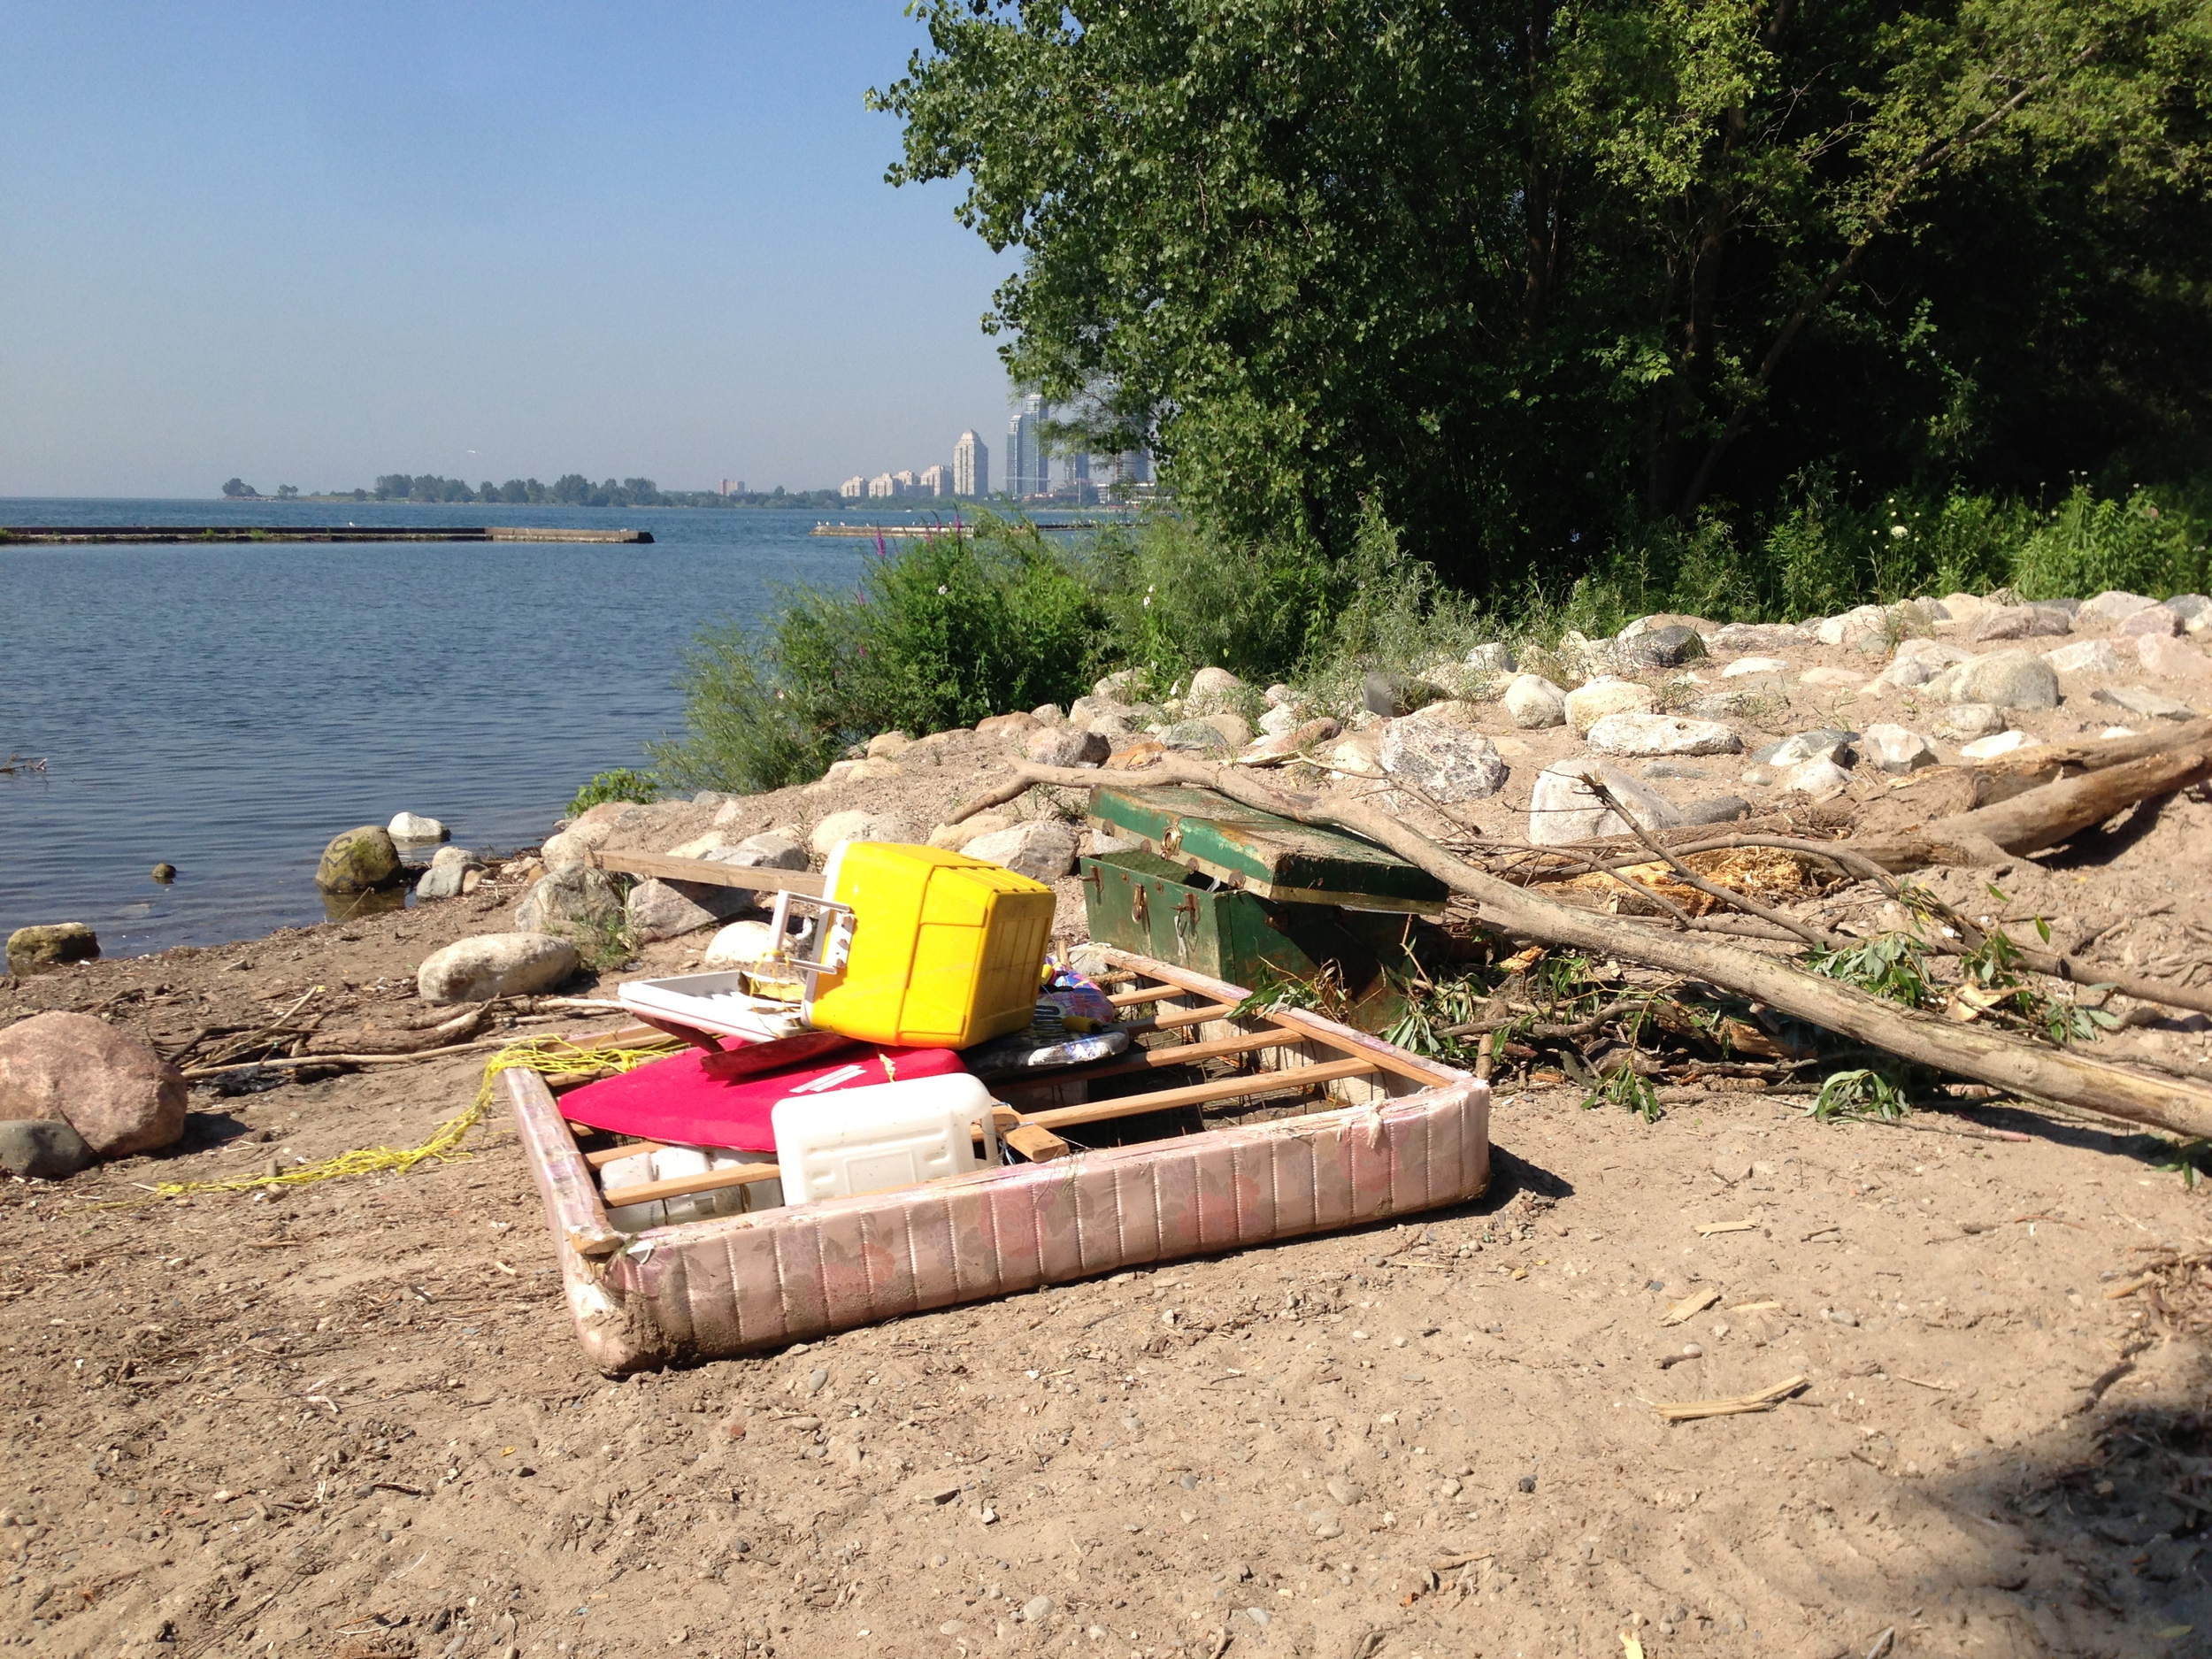 Materials and debris washed ashore following the major flood in Toronto (2013). Photo courtesy of Lake Ontario Waterkeeper. July 16, 2013.